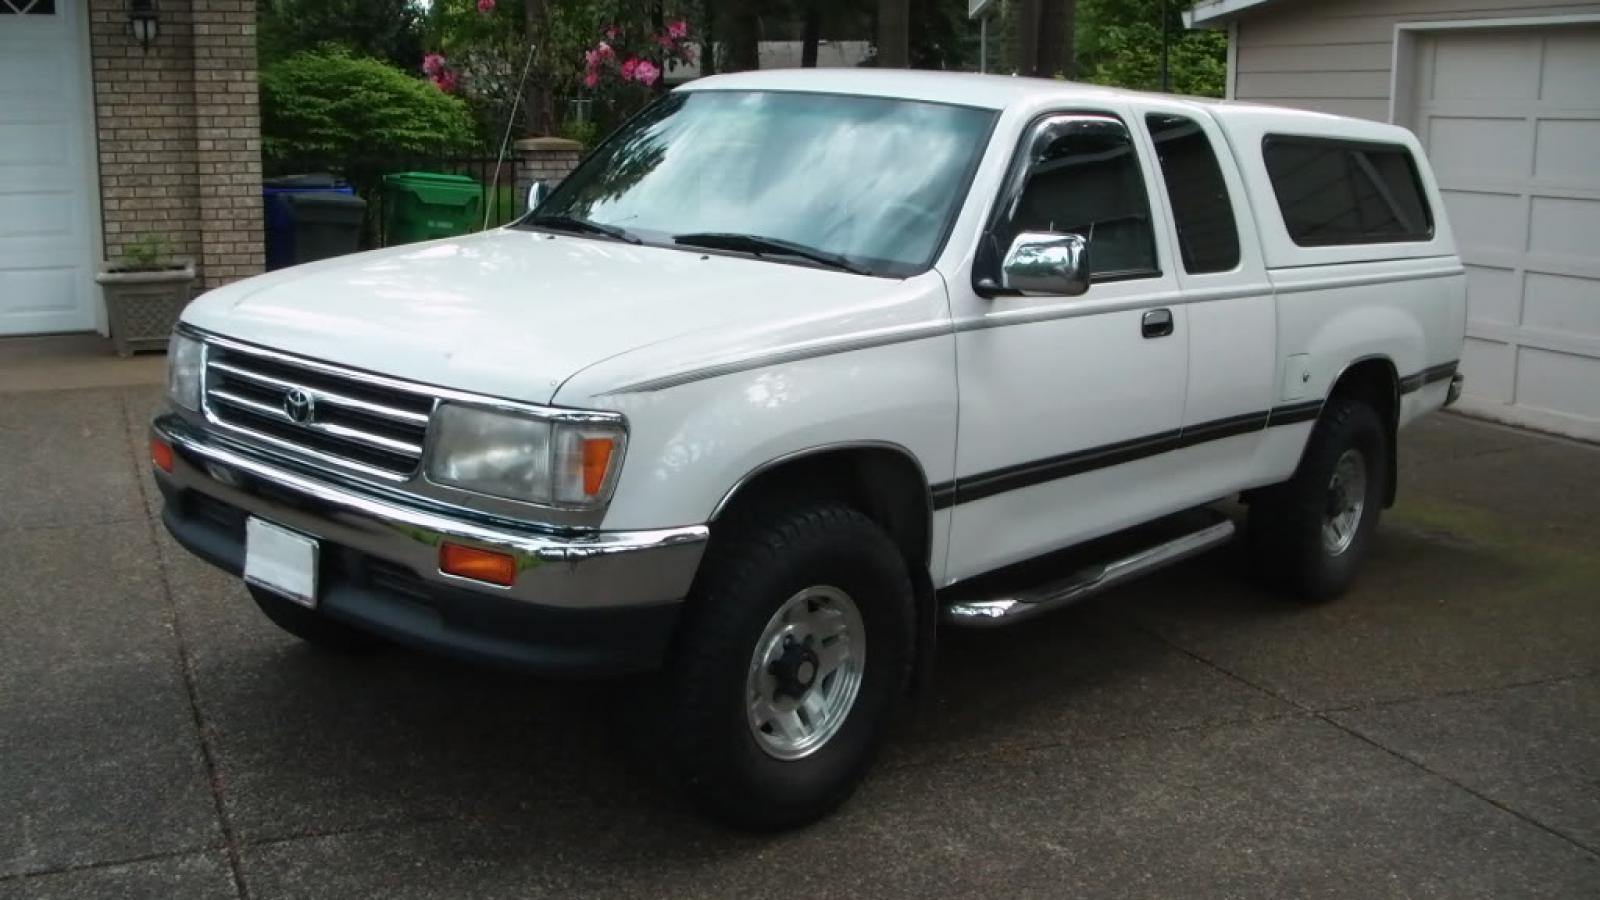 1996 Toyota T100 Information And Photos Zombiedrive Engine Diagram 1995 Sr5 1 800 1024 1280 1600 Origin